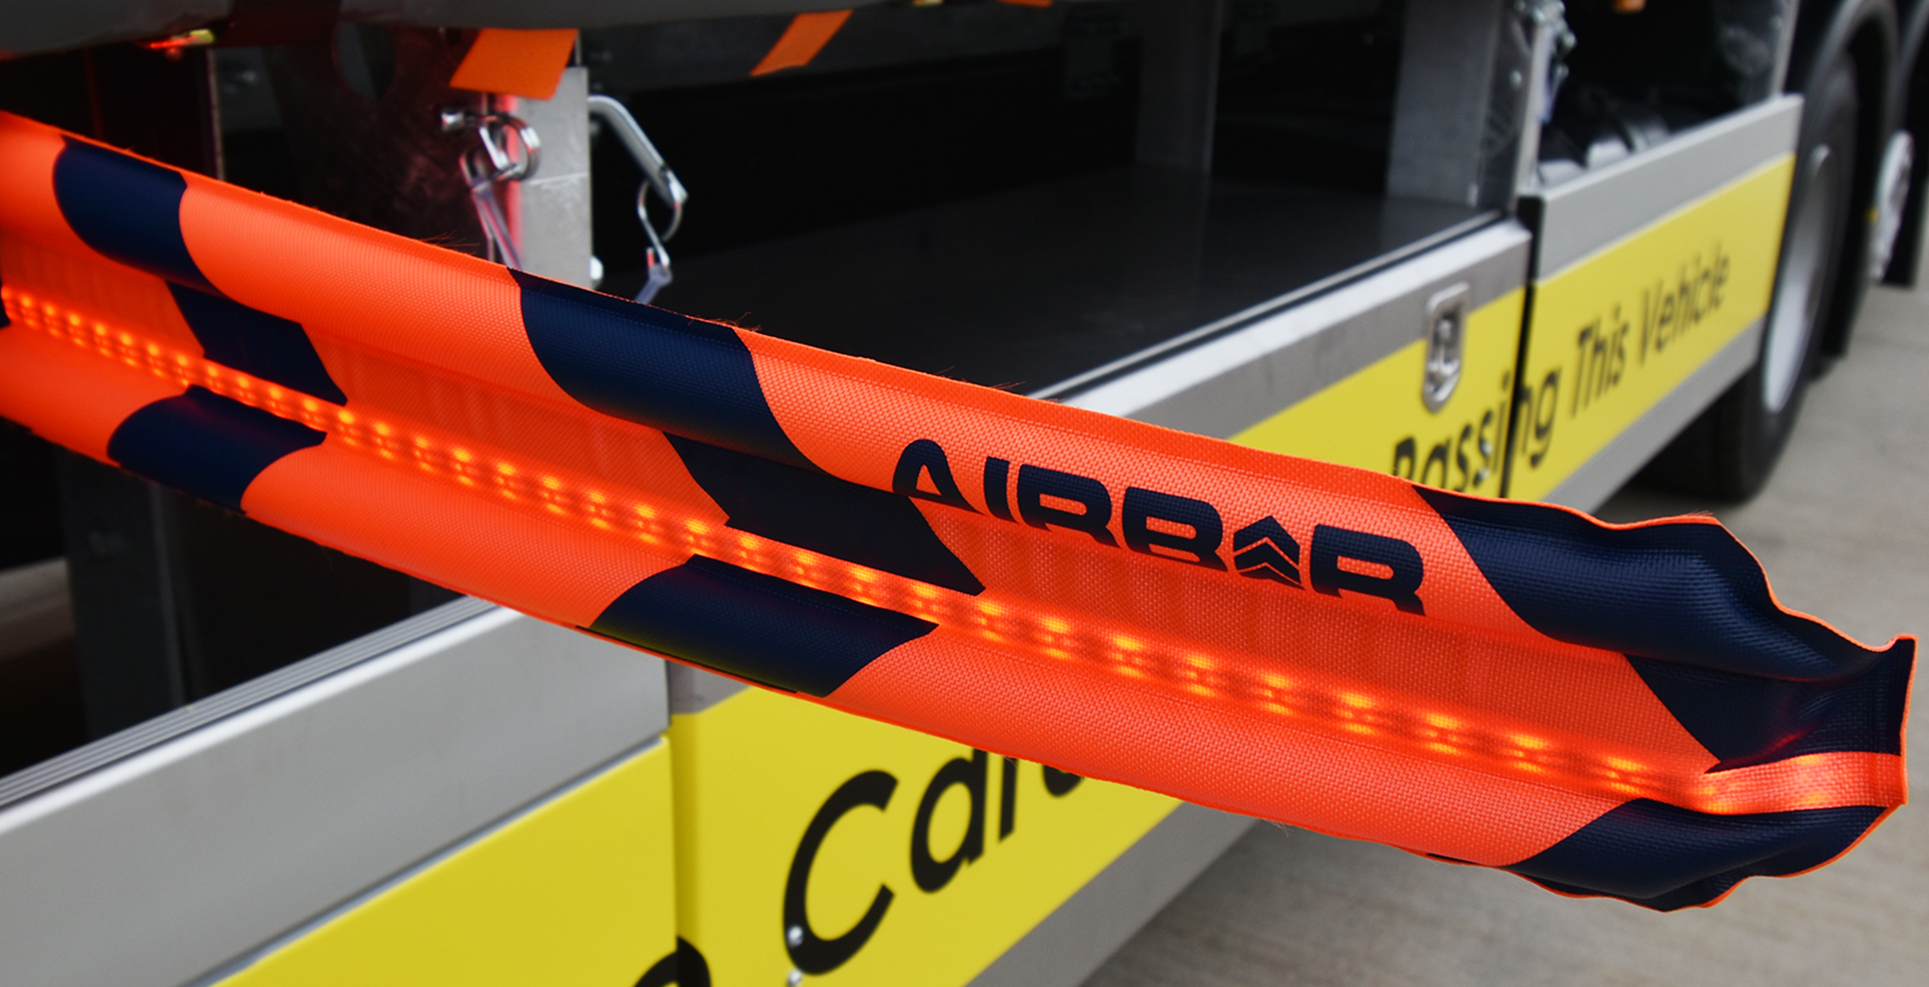 Safety cyclists trucks NuVech AirBar system solution trailers rigids